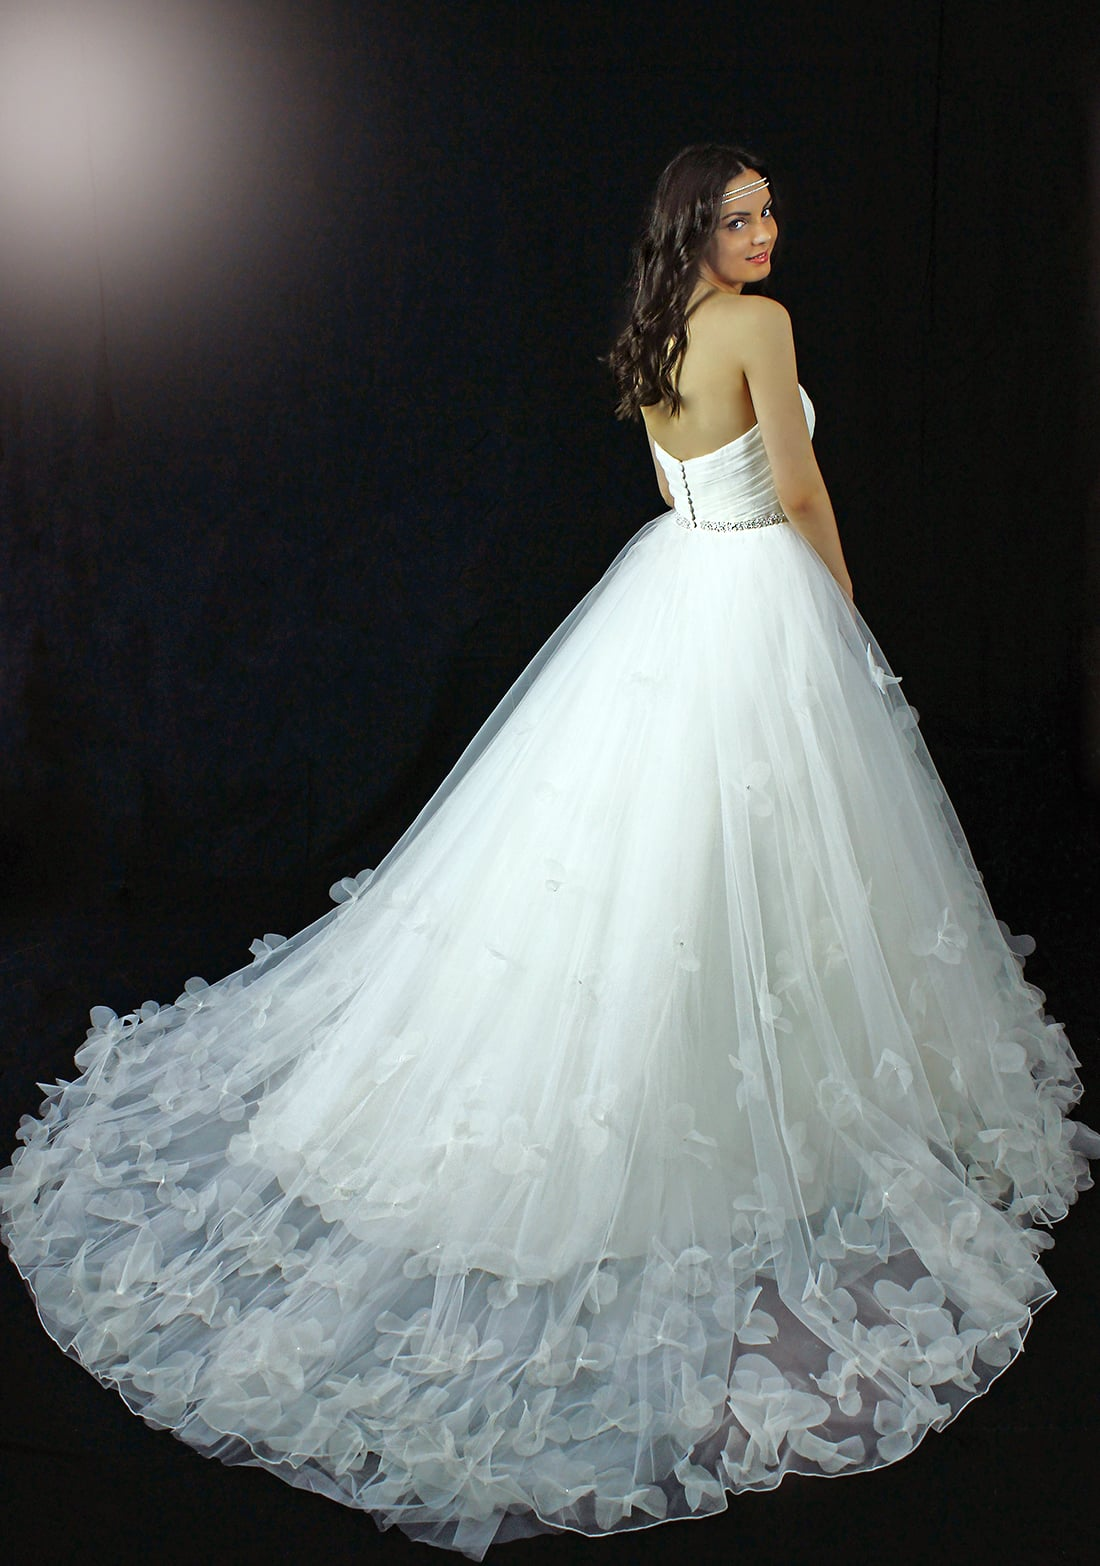 Pasha Model - Colectia Dreams - Adora Sposa (2)